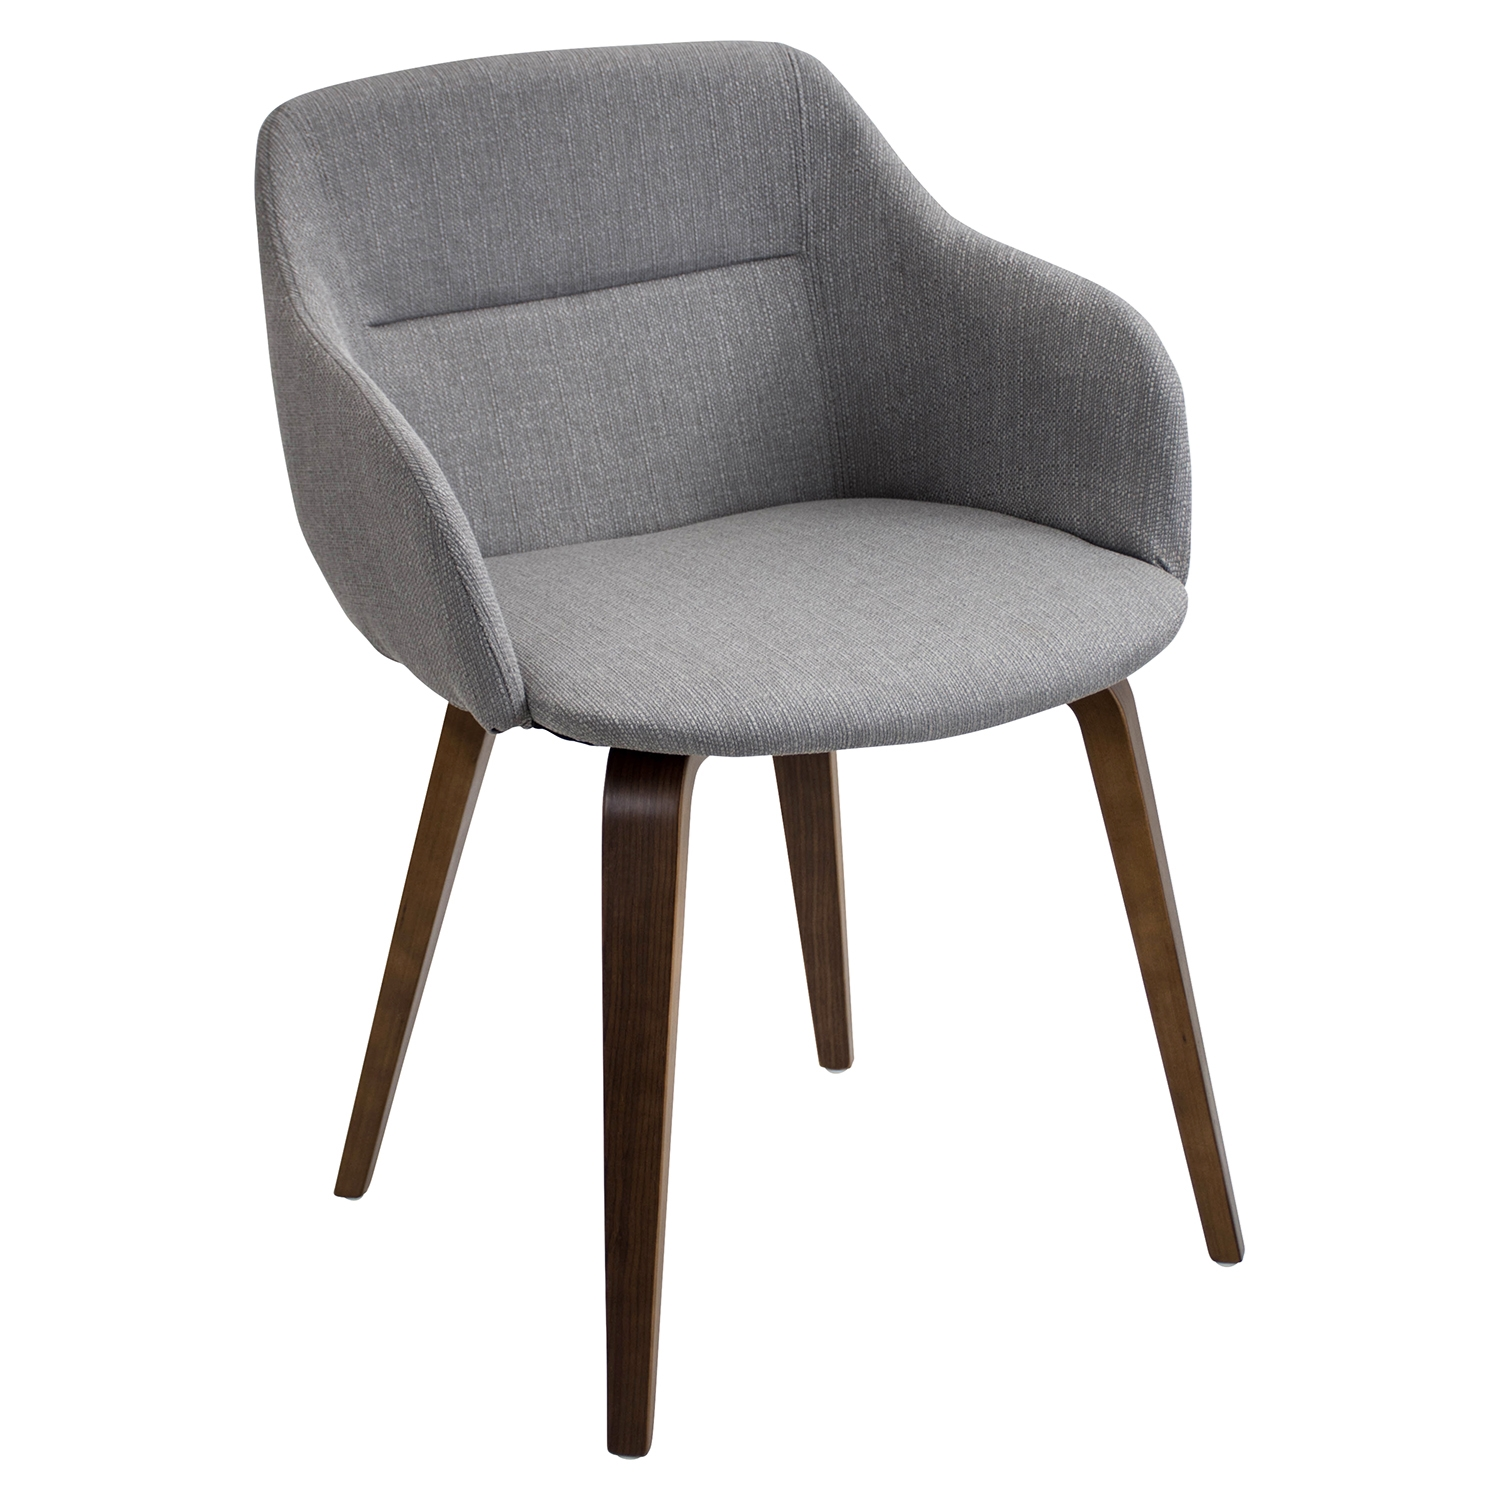 Campania Dining Chair - Gray